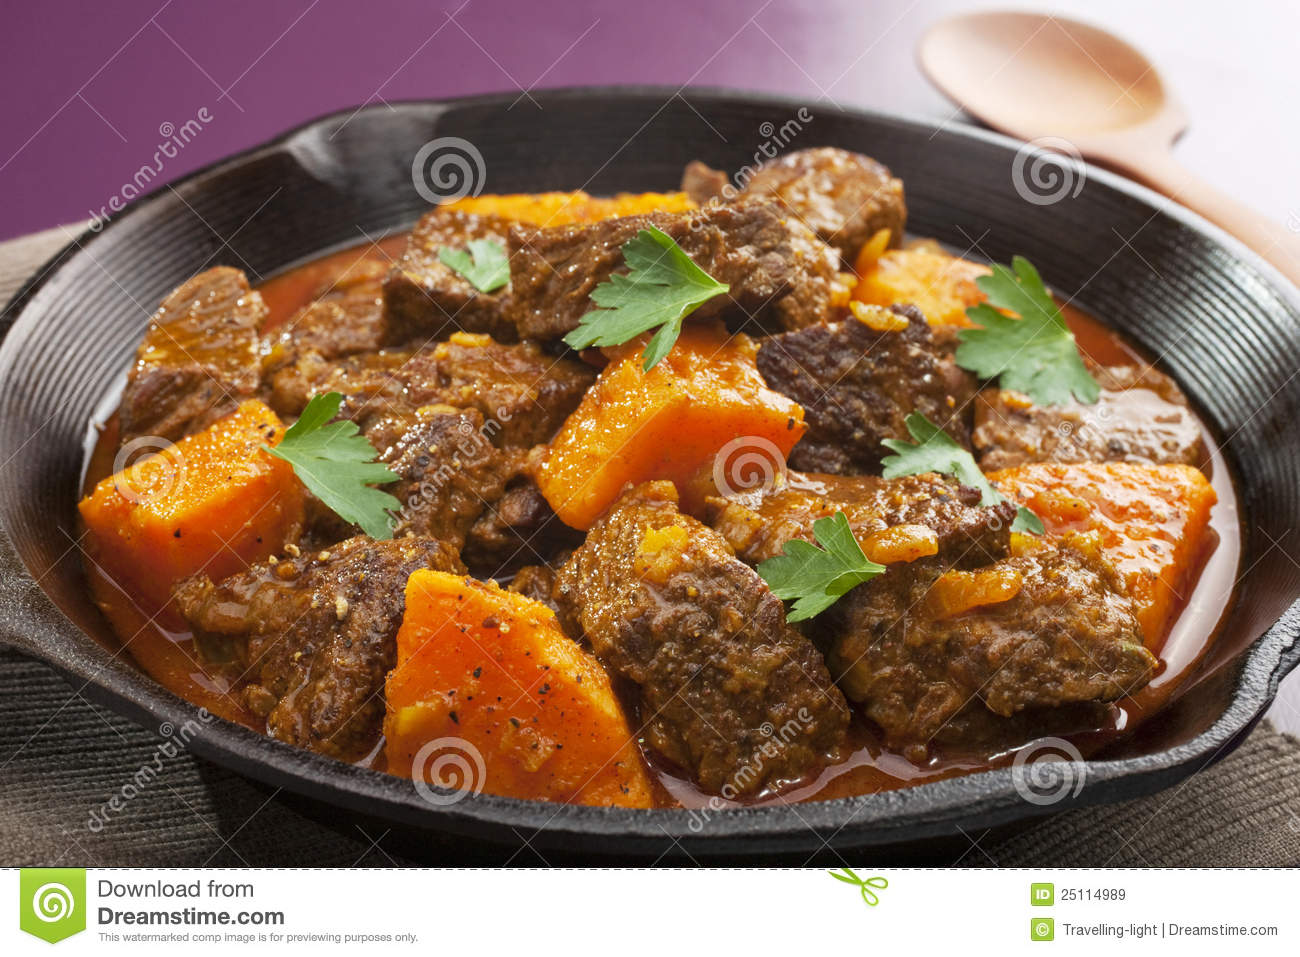 Download Moroccan Beef Tagine stock image. Image of food, sweet - 25114989